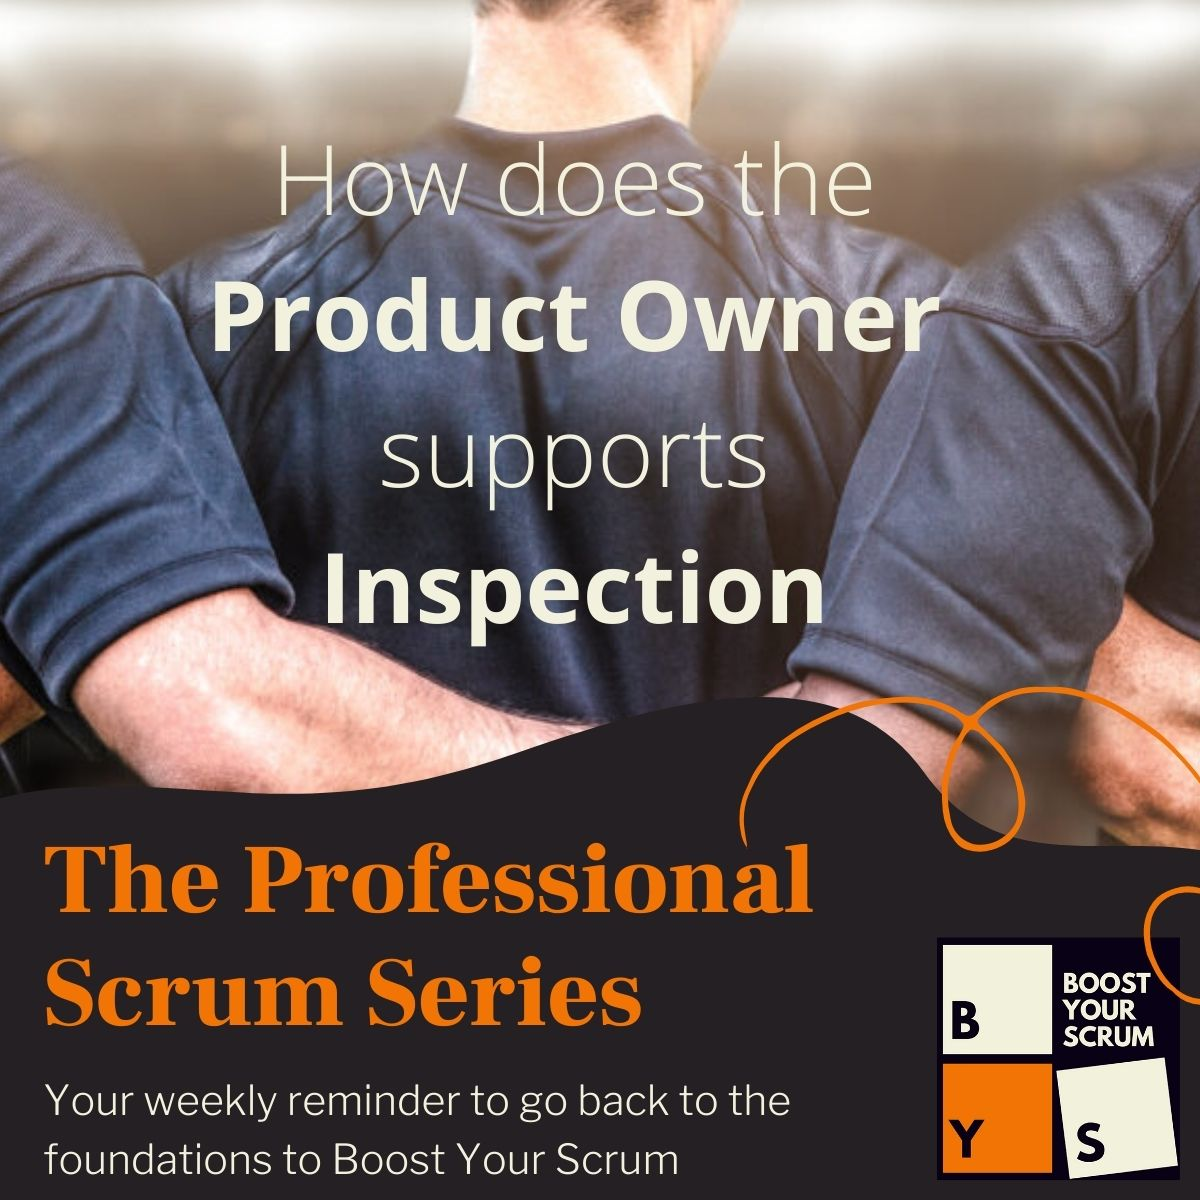 How does the Product Owner support Inspection?